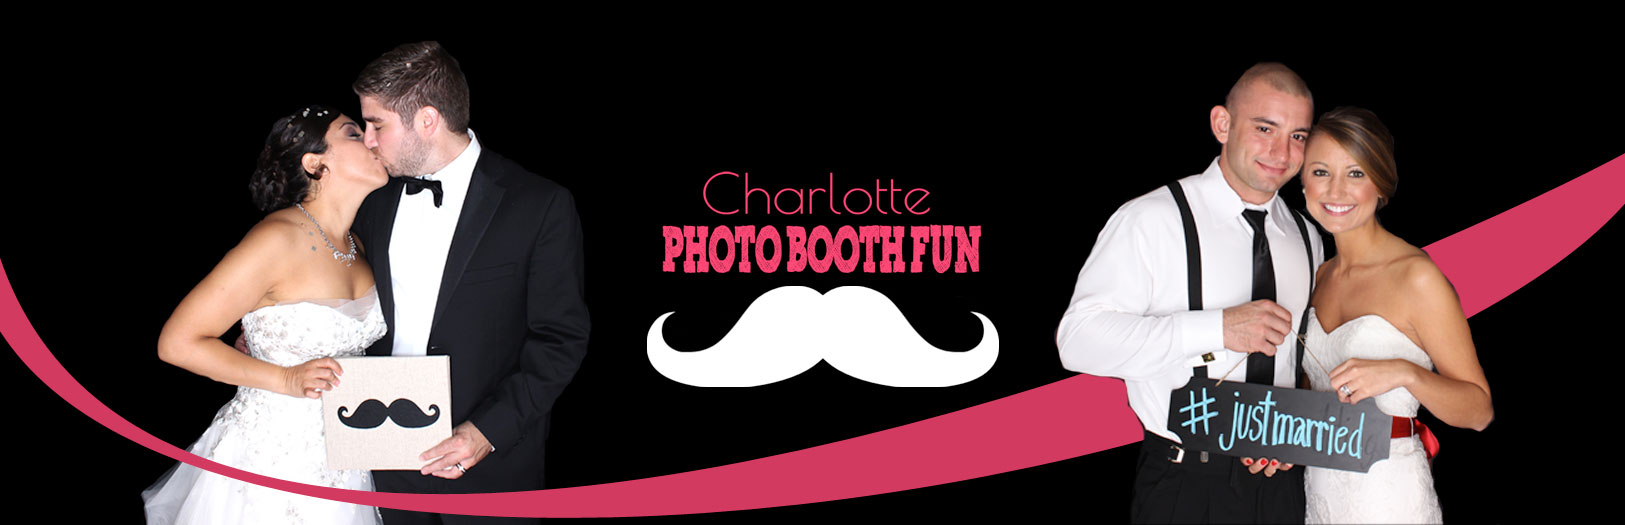 Charlotte NC Photo Booth Rentals